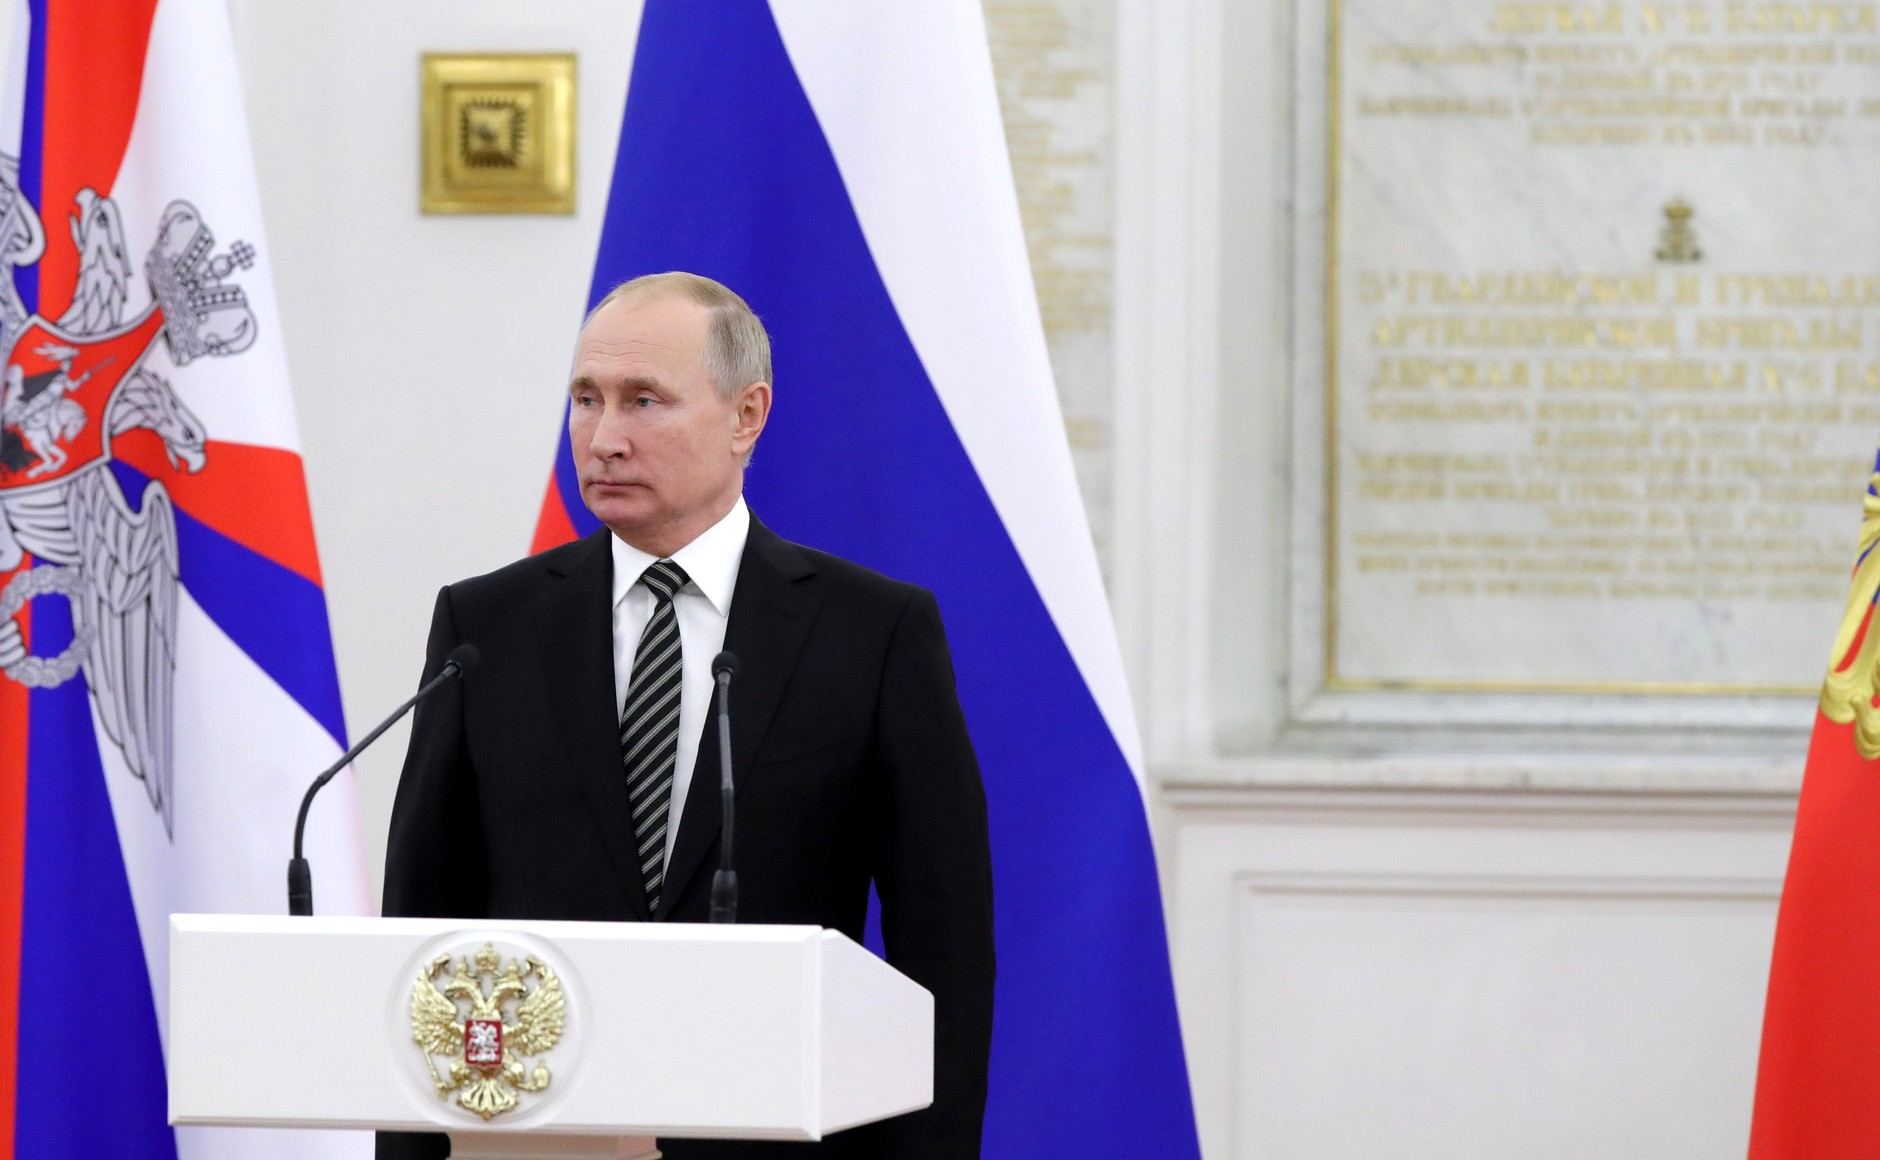 Putin Finally Agrees to the Normandy Summit: What Is the Price?